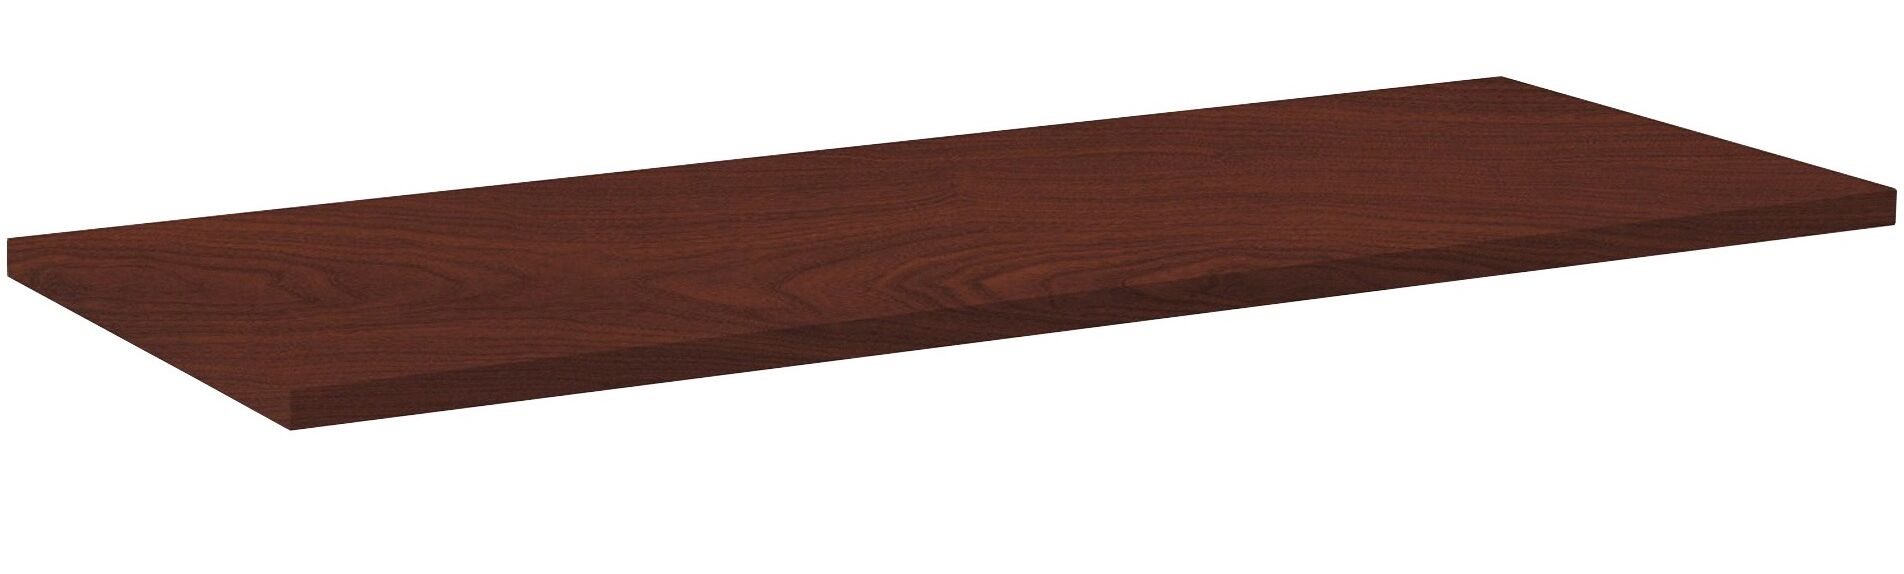 Invent Table Top Color: Mahogany, Size: 3